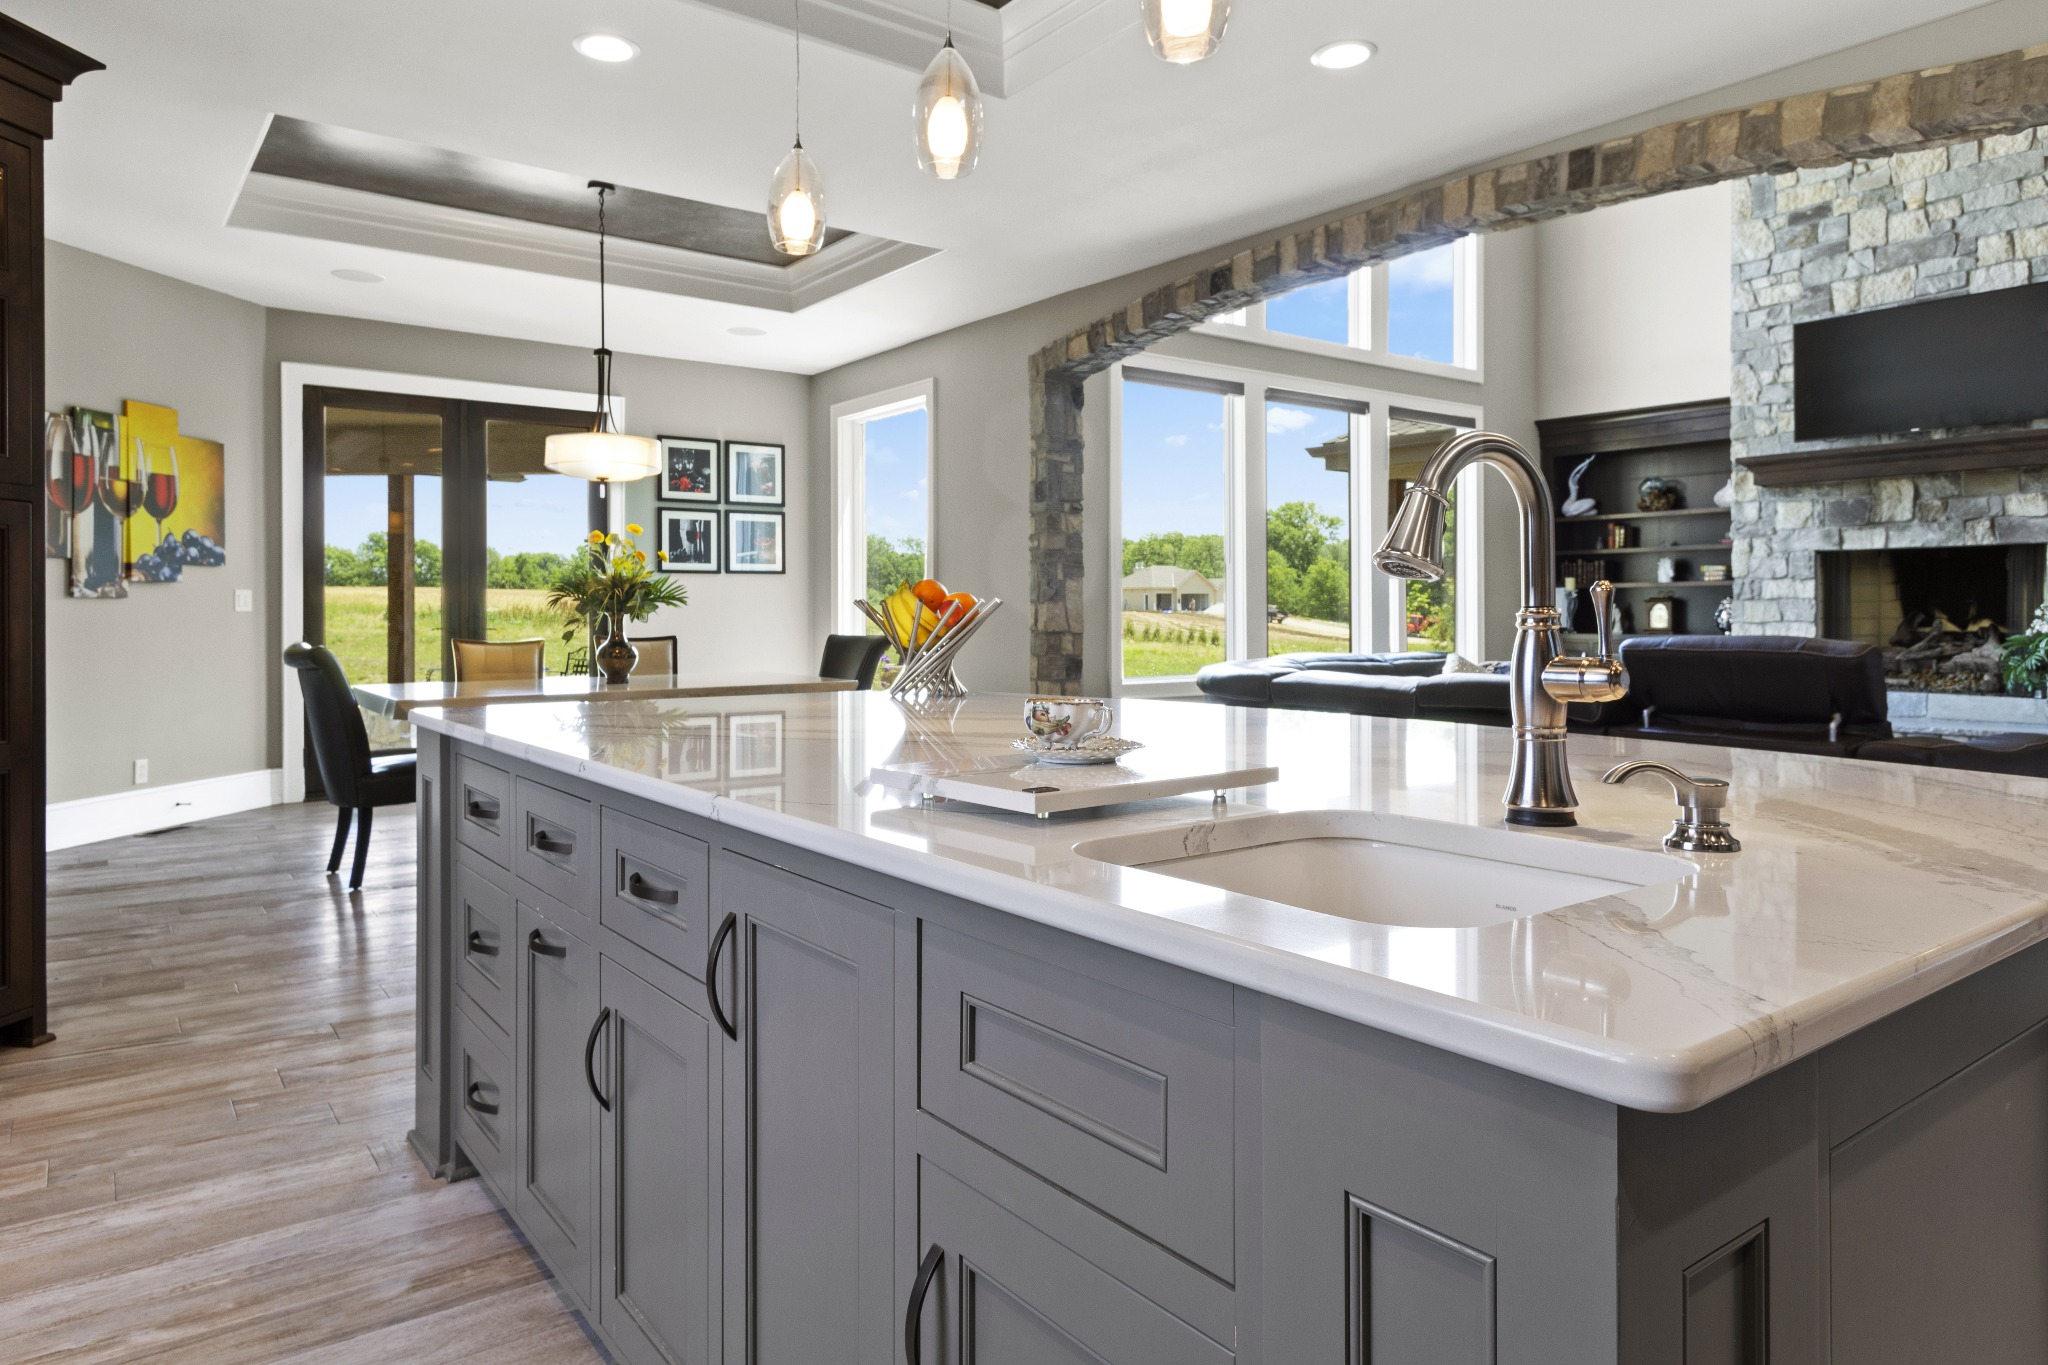 A luxury kitchen with gray cabinets and stone counters.